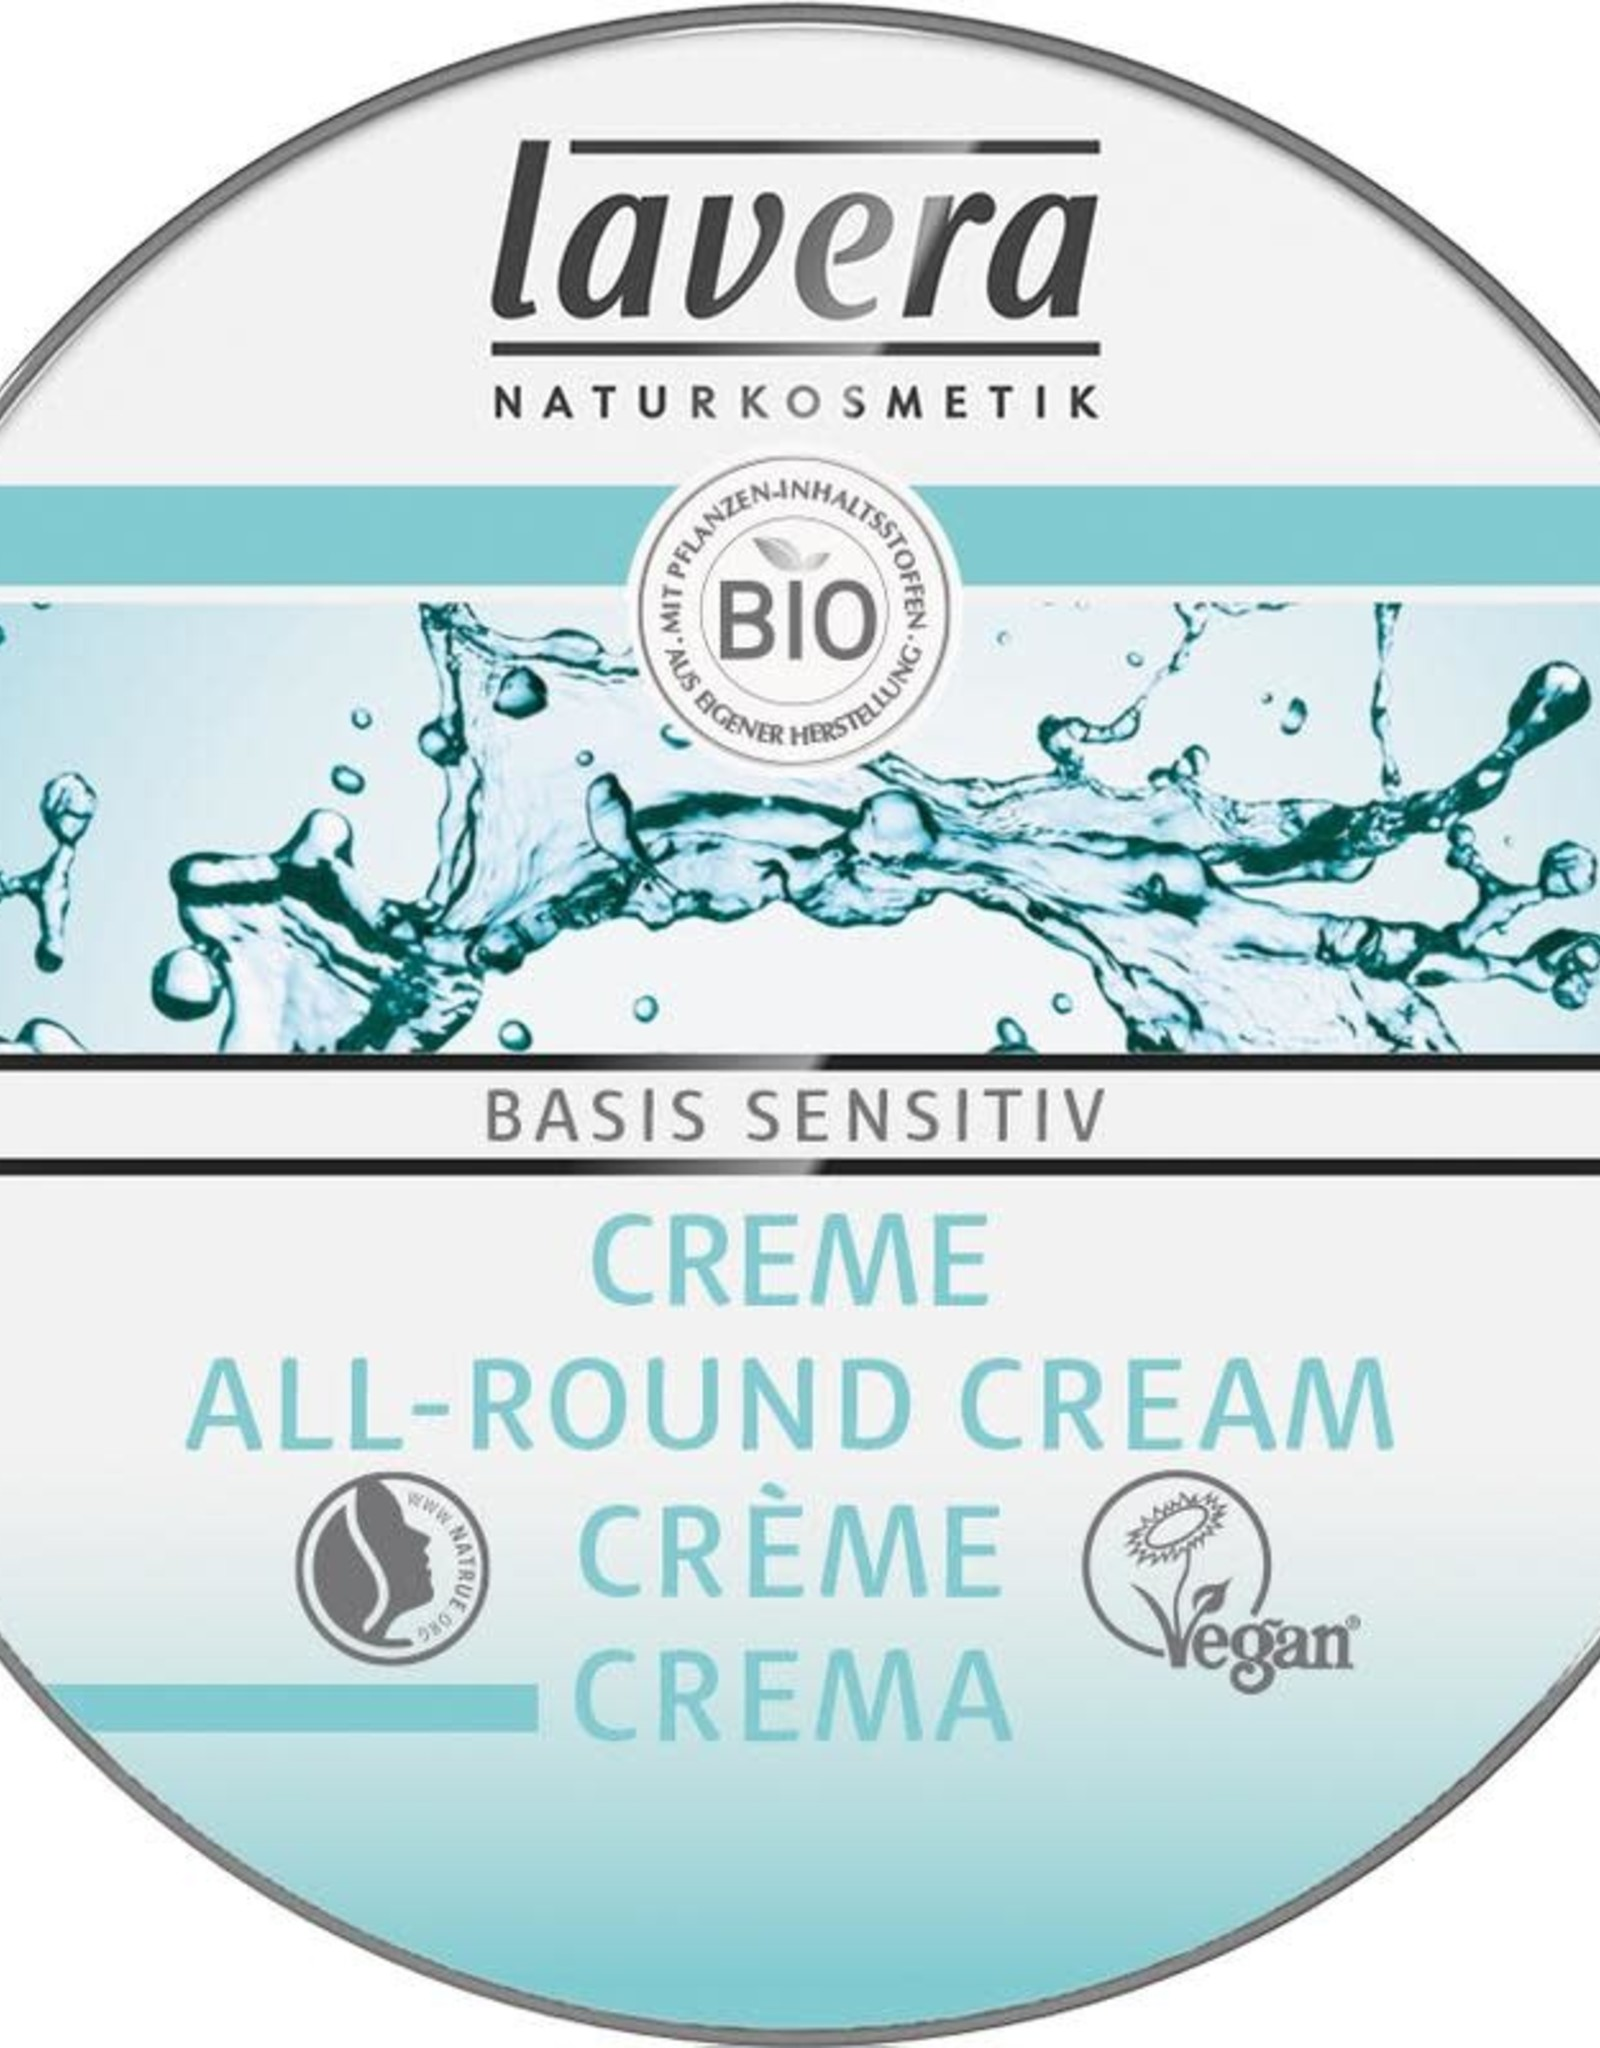 Lavera Basis Sensitiv all-round creme/cream mini 25 ml